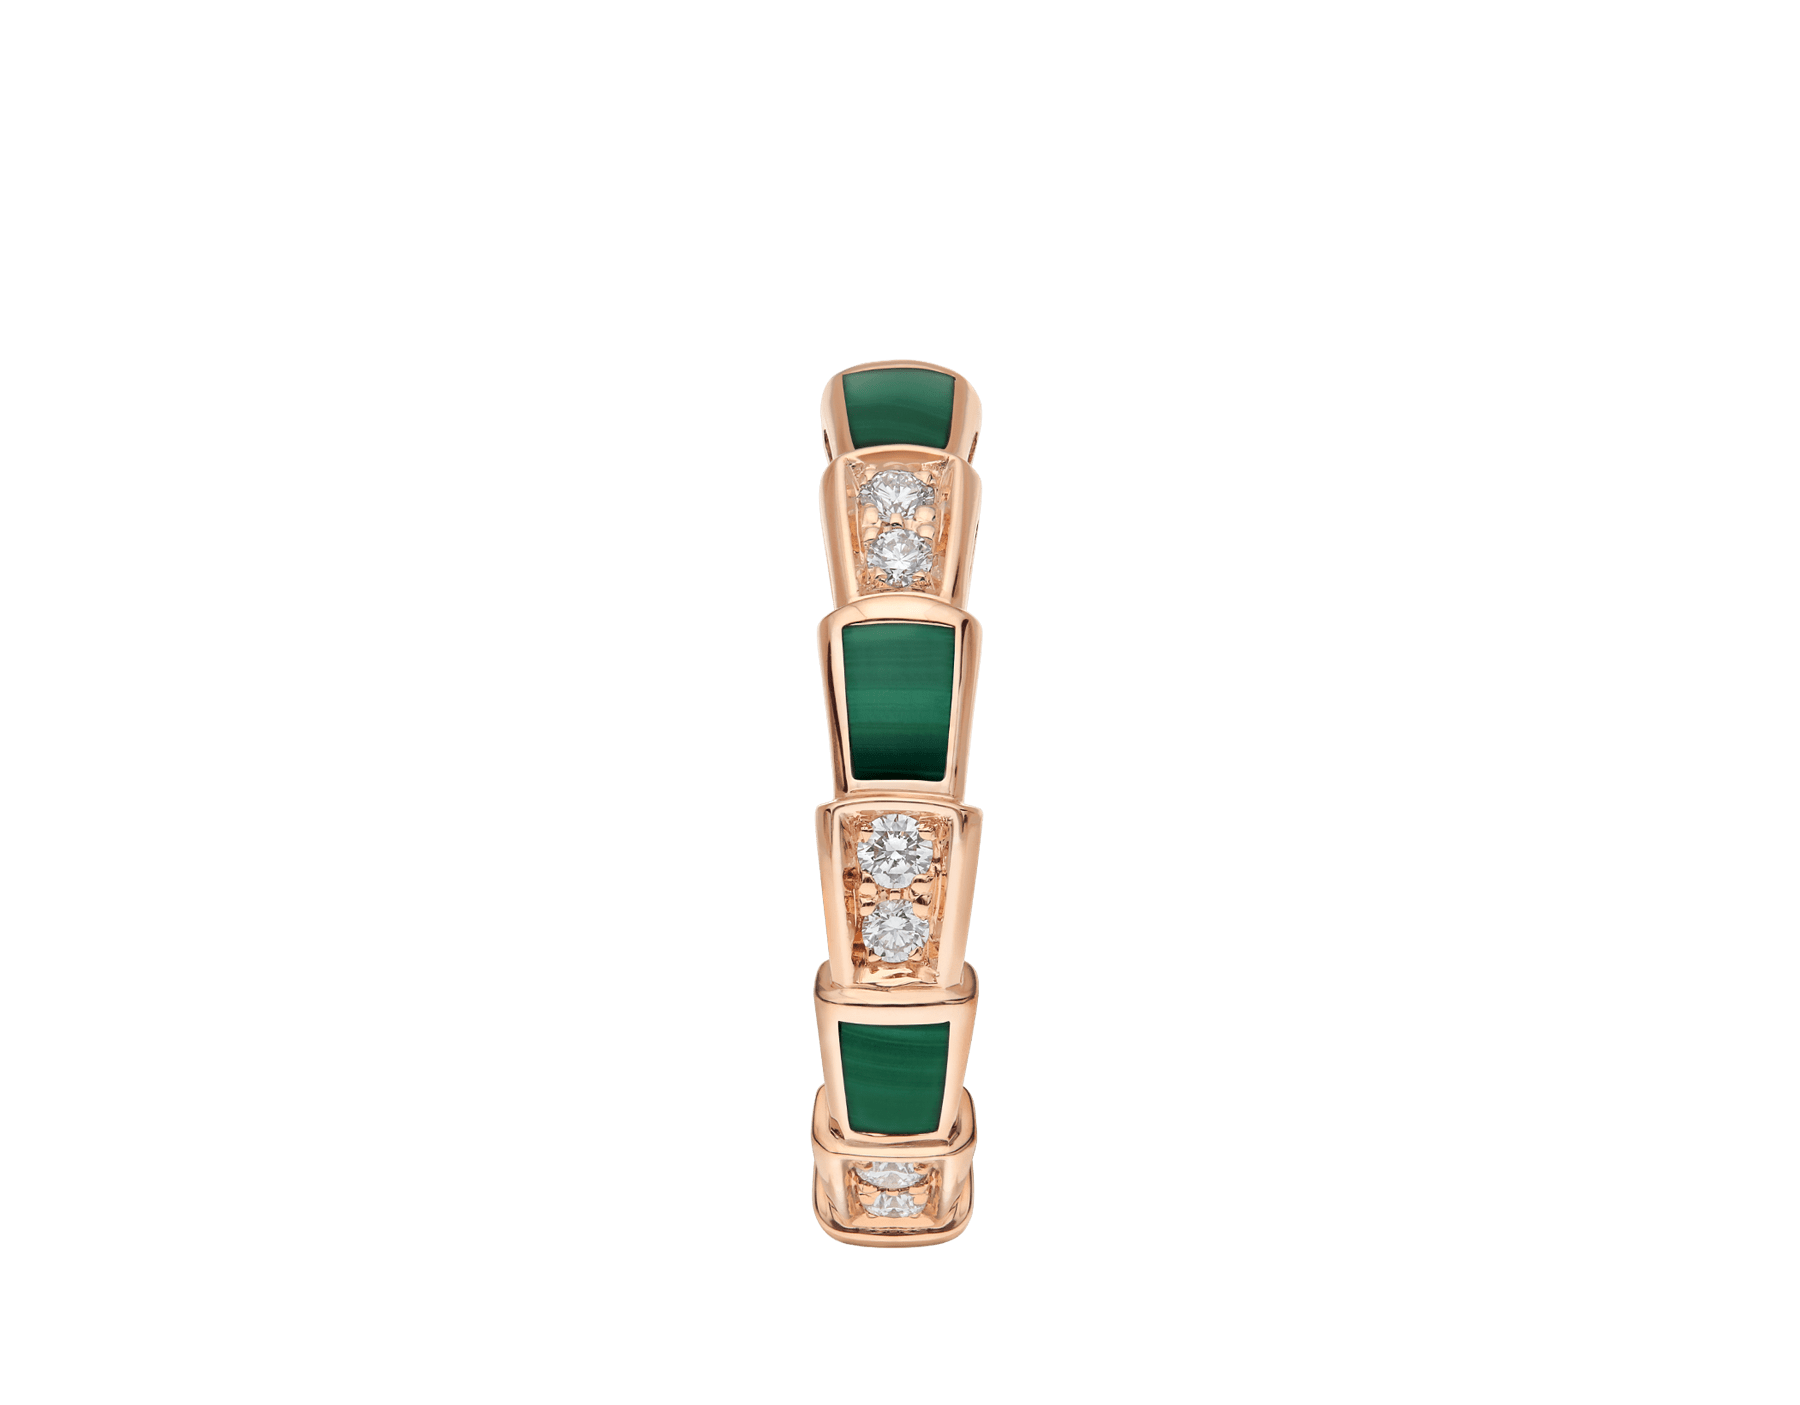 Serpenti Viper 18 kt rose gold thin ring set with malachite elements and pavé diamonds (0.20 ct) AN858752 image 2